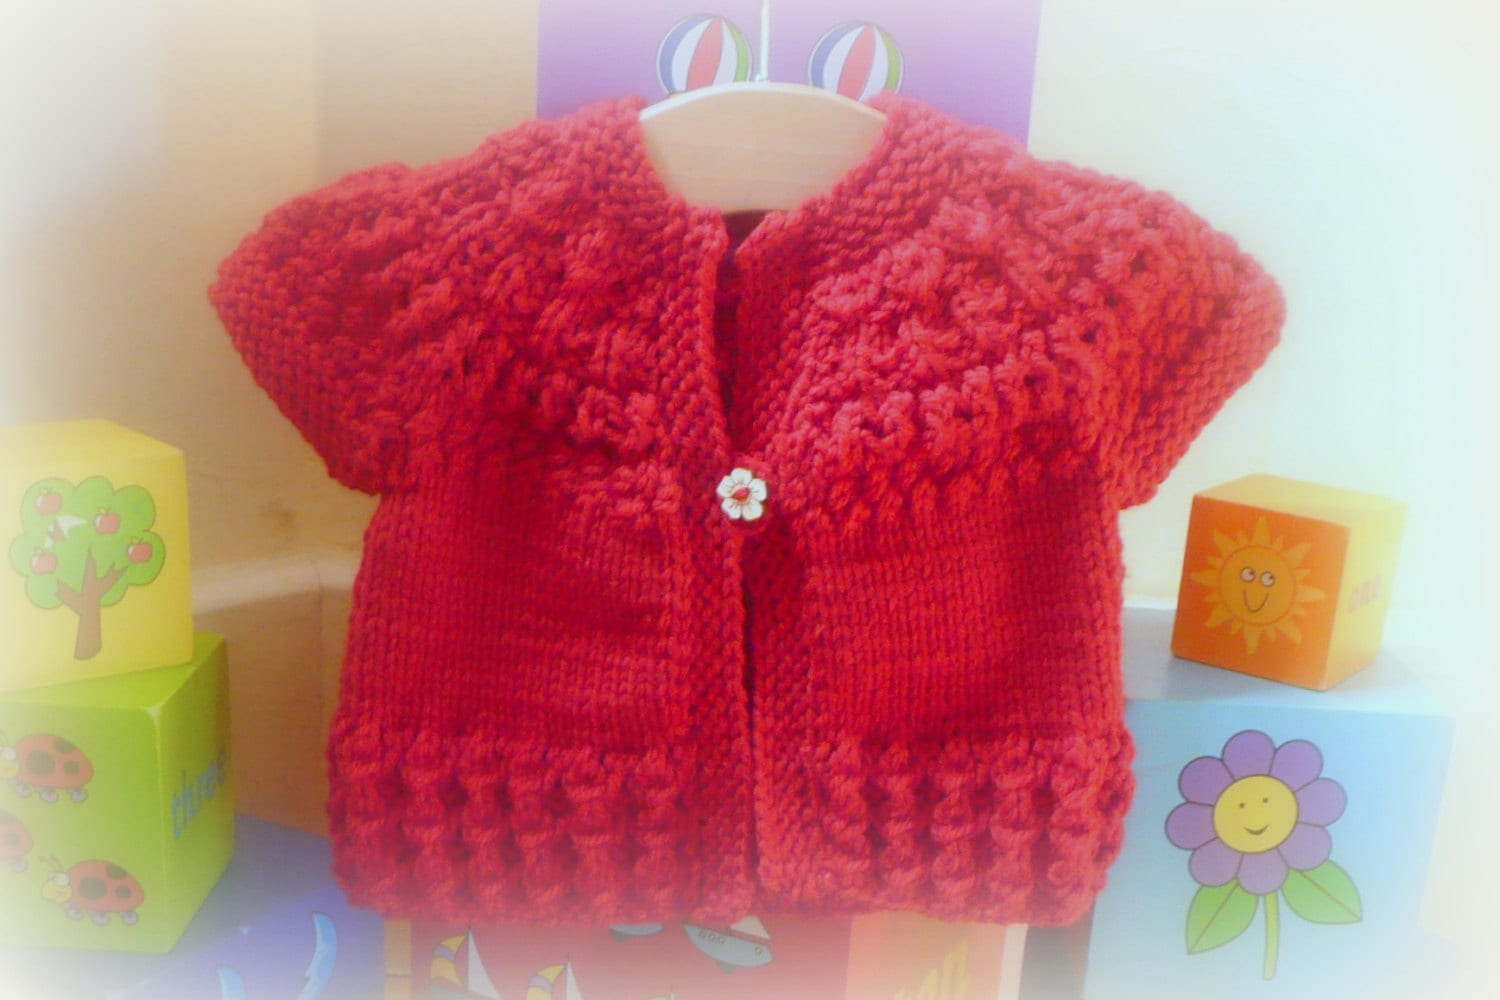 Knitting Pattern Cardigan Sweater Jacket - Ruby a top down seamless ...